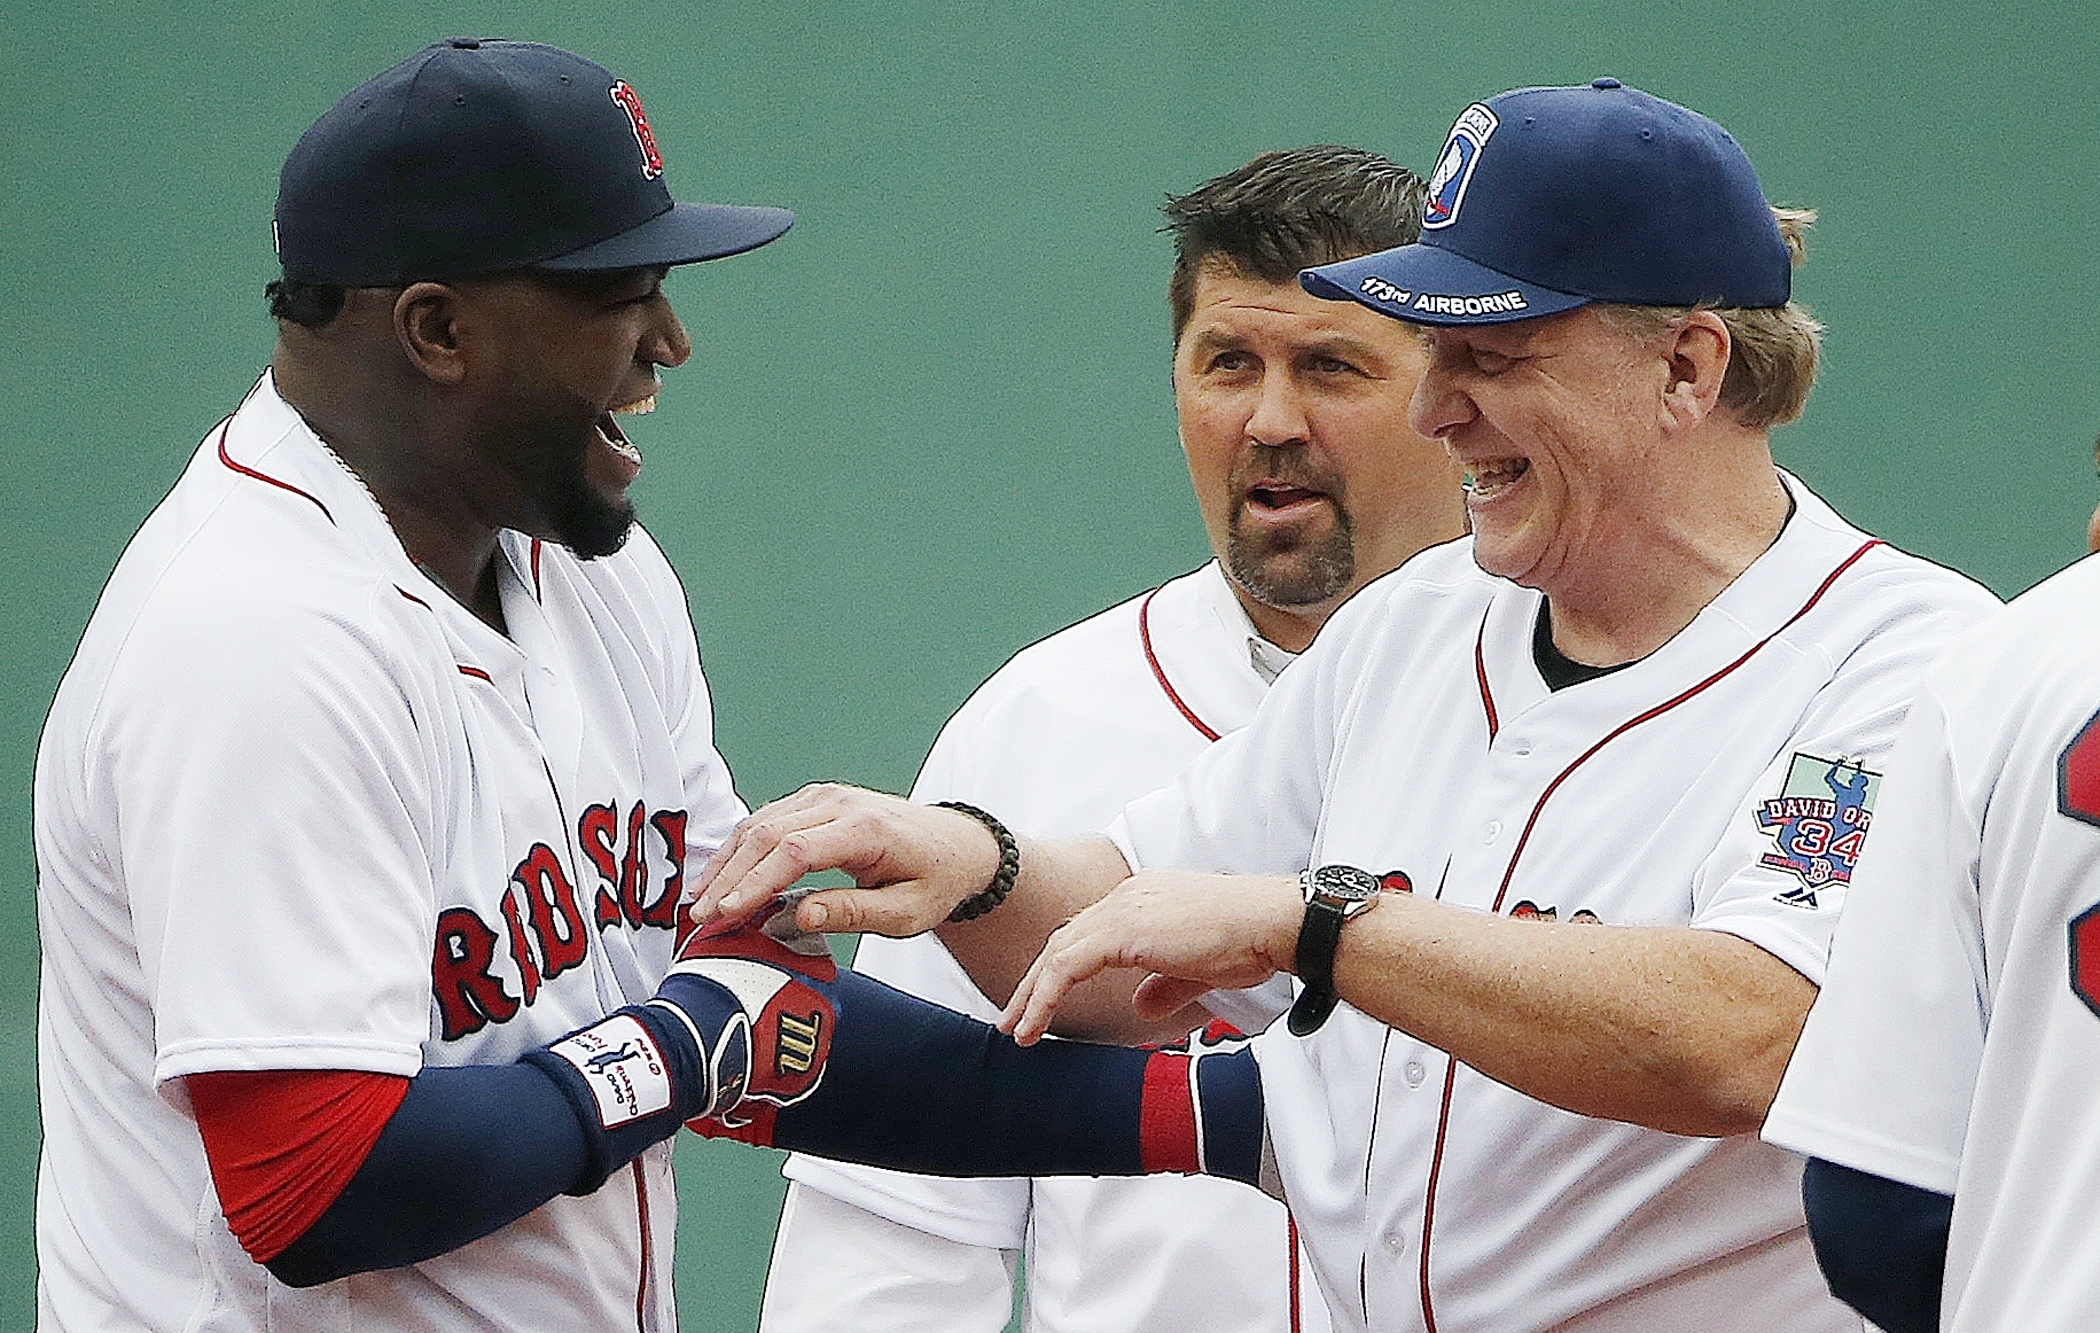 Boston Red Sox's David Ortiz, left, jokes with former teammates Curt Schilling, right, and Jason Varitek during a ceremony before a baseball game against the Toronto Blue Jays in Boston, Sunday, Oct. 2, 2016. (AP Photo/Michael Dwyer)